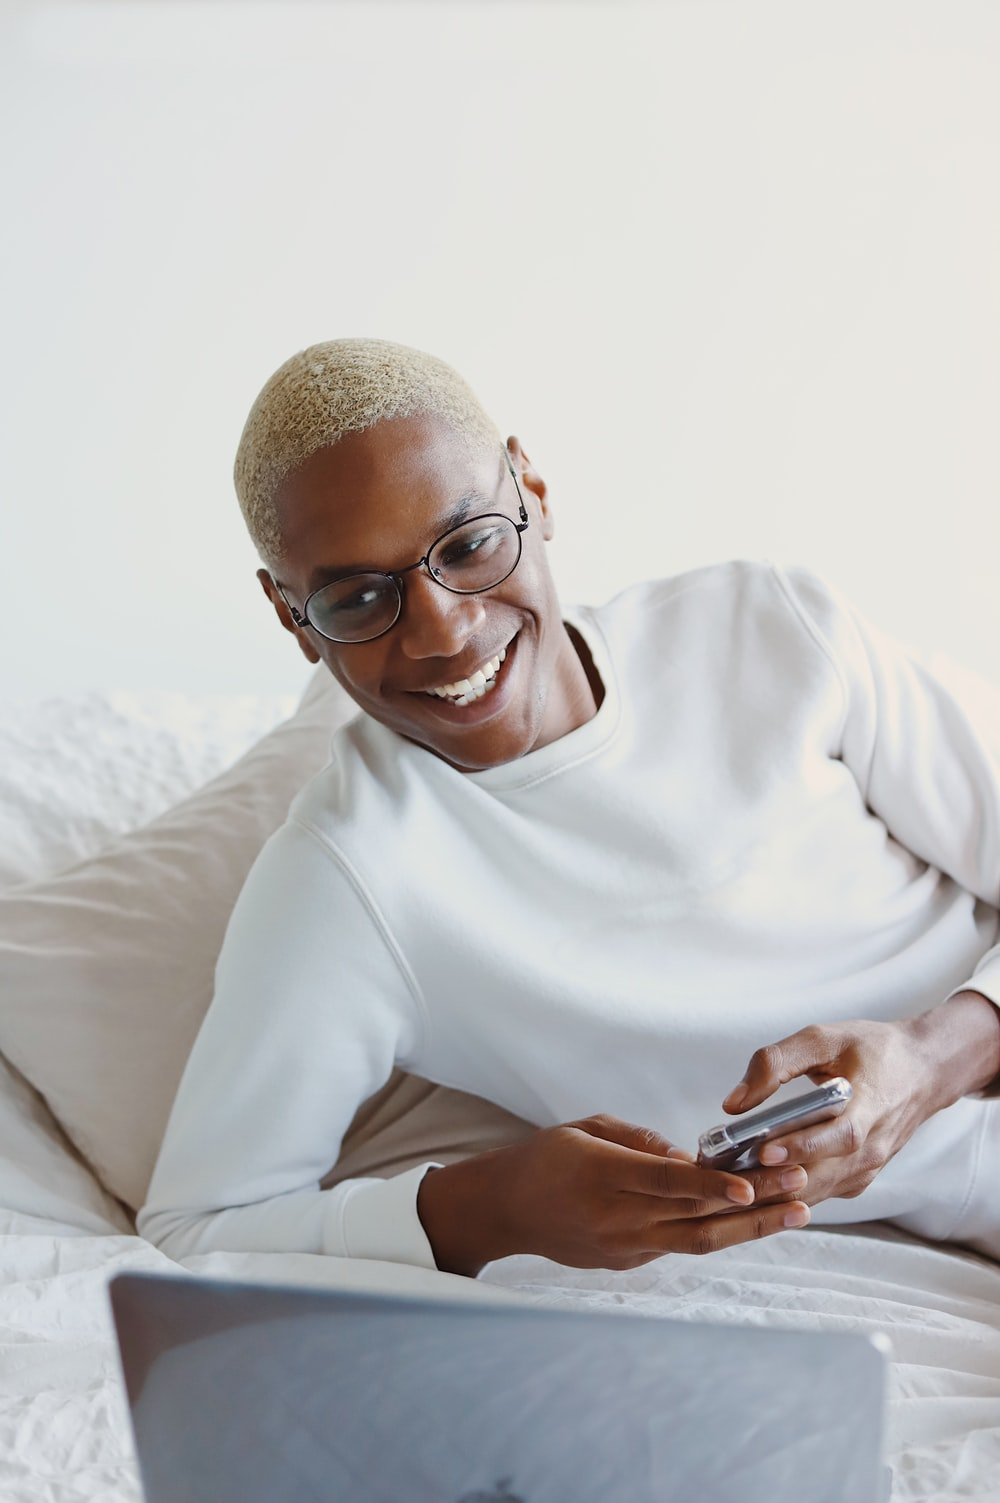 man in white turtleneck sweater holding smartphone